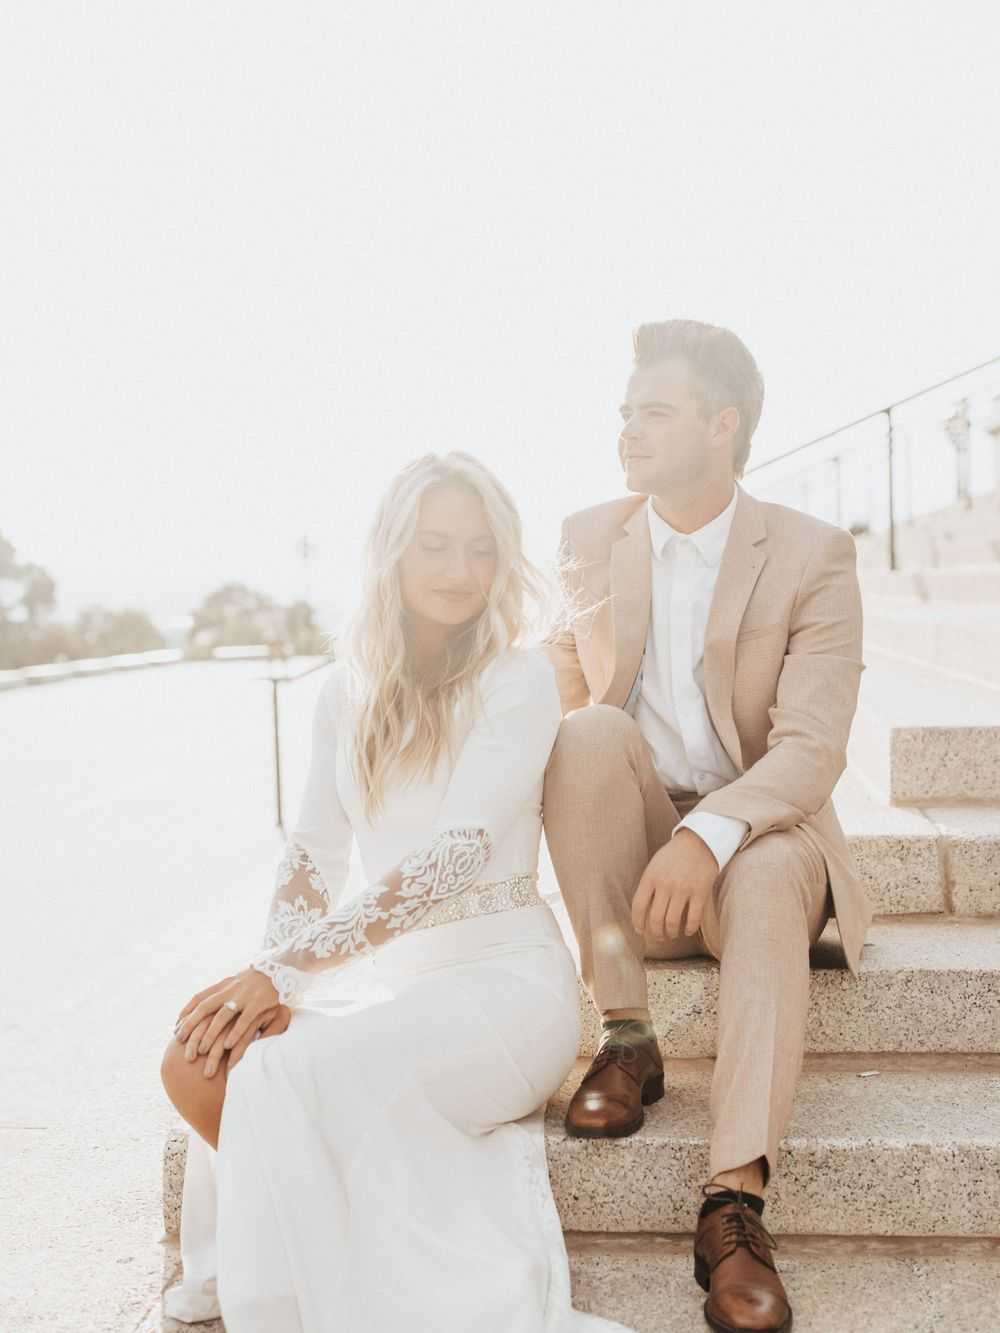 utah capitol sunset elopement wedding dress bridal session utah elopement photographer utah wedding photographer